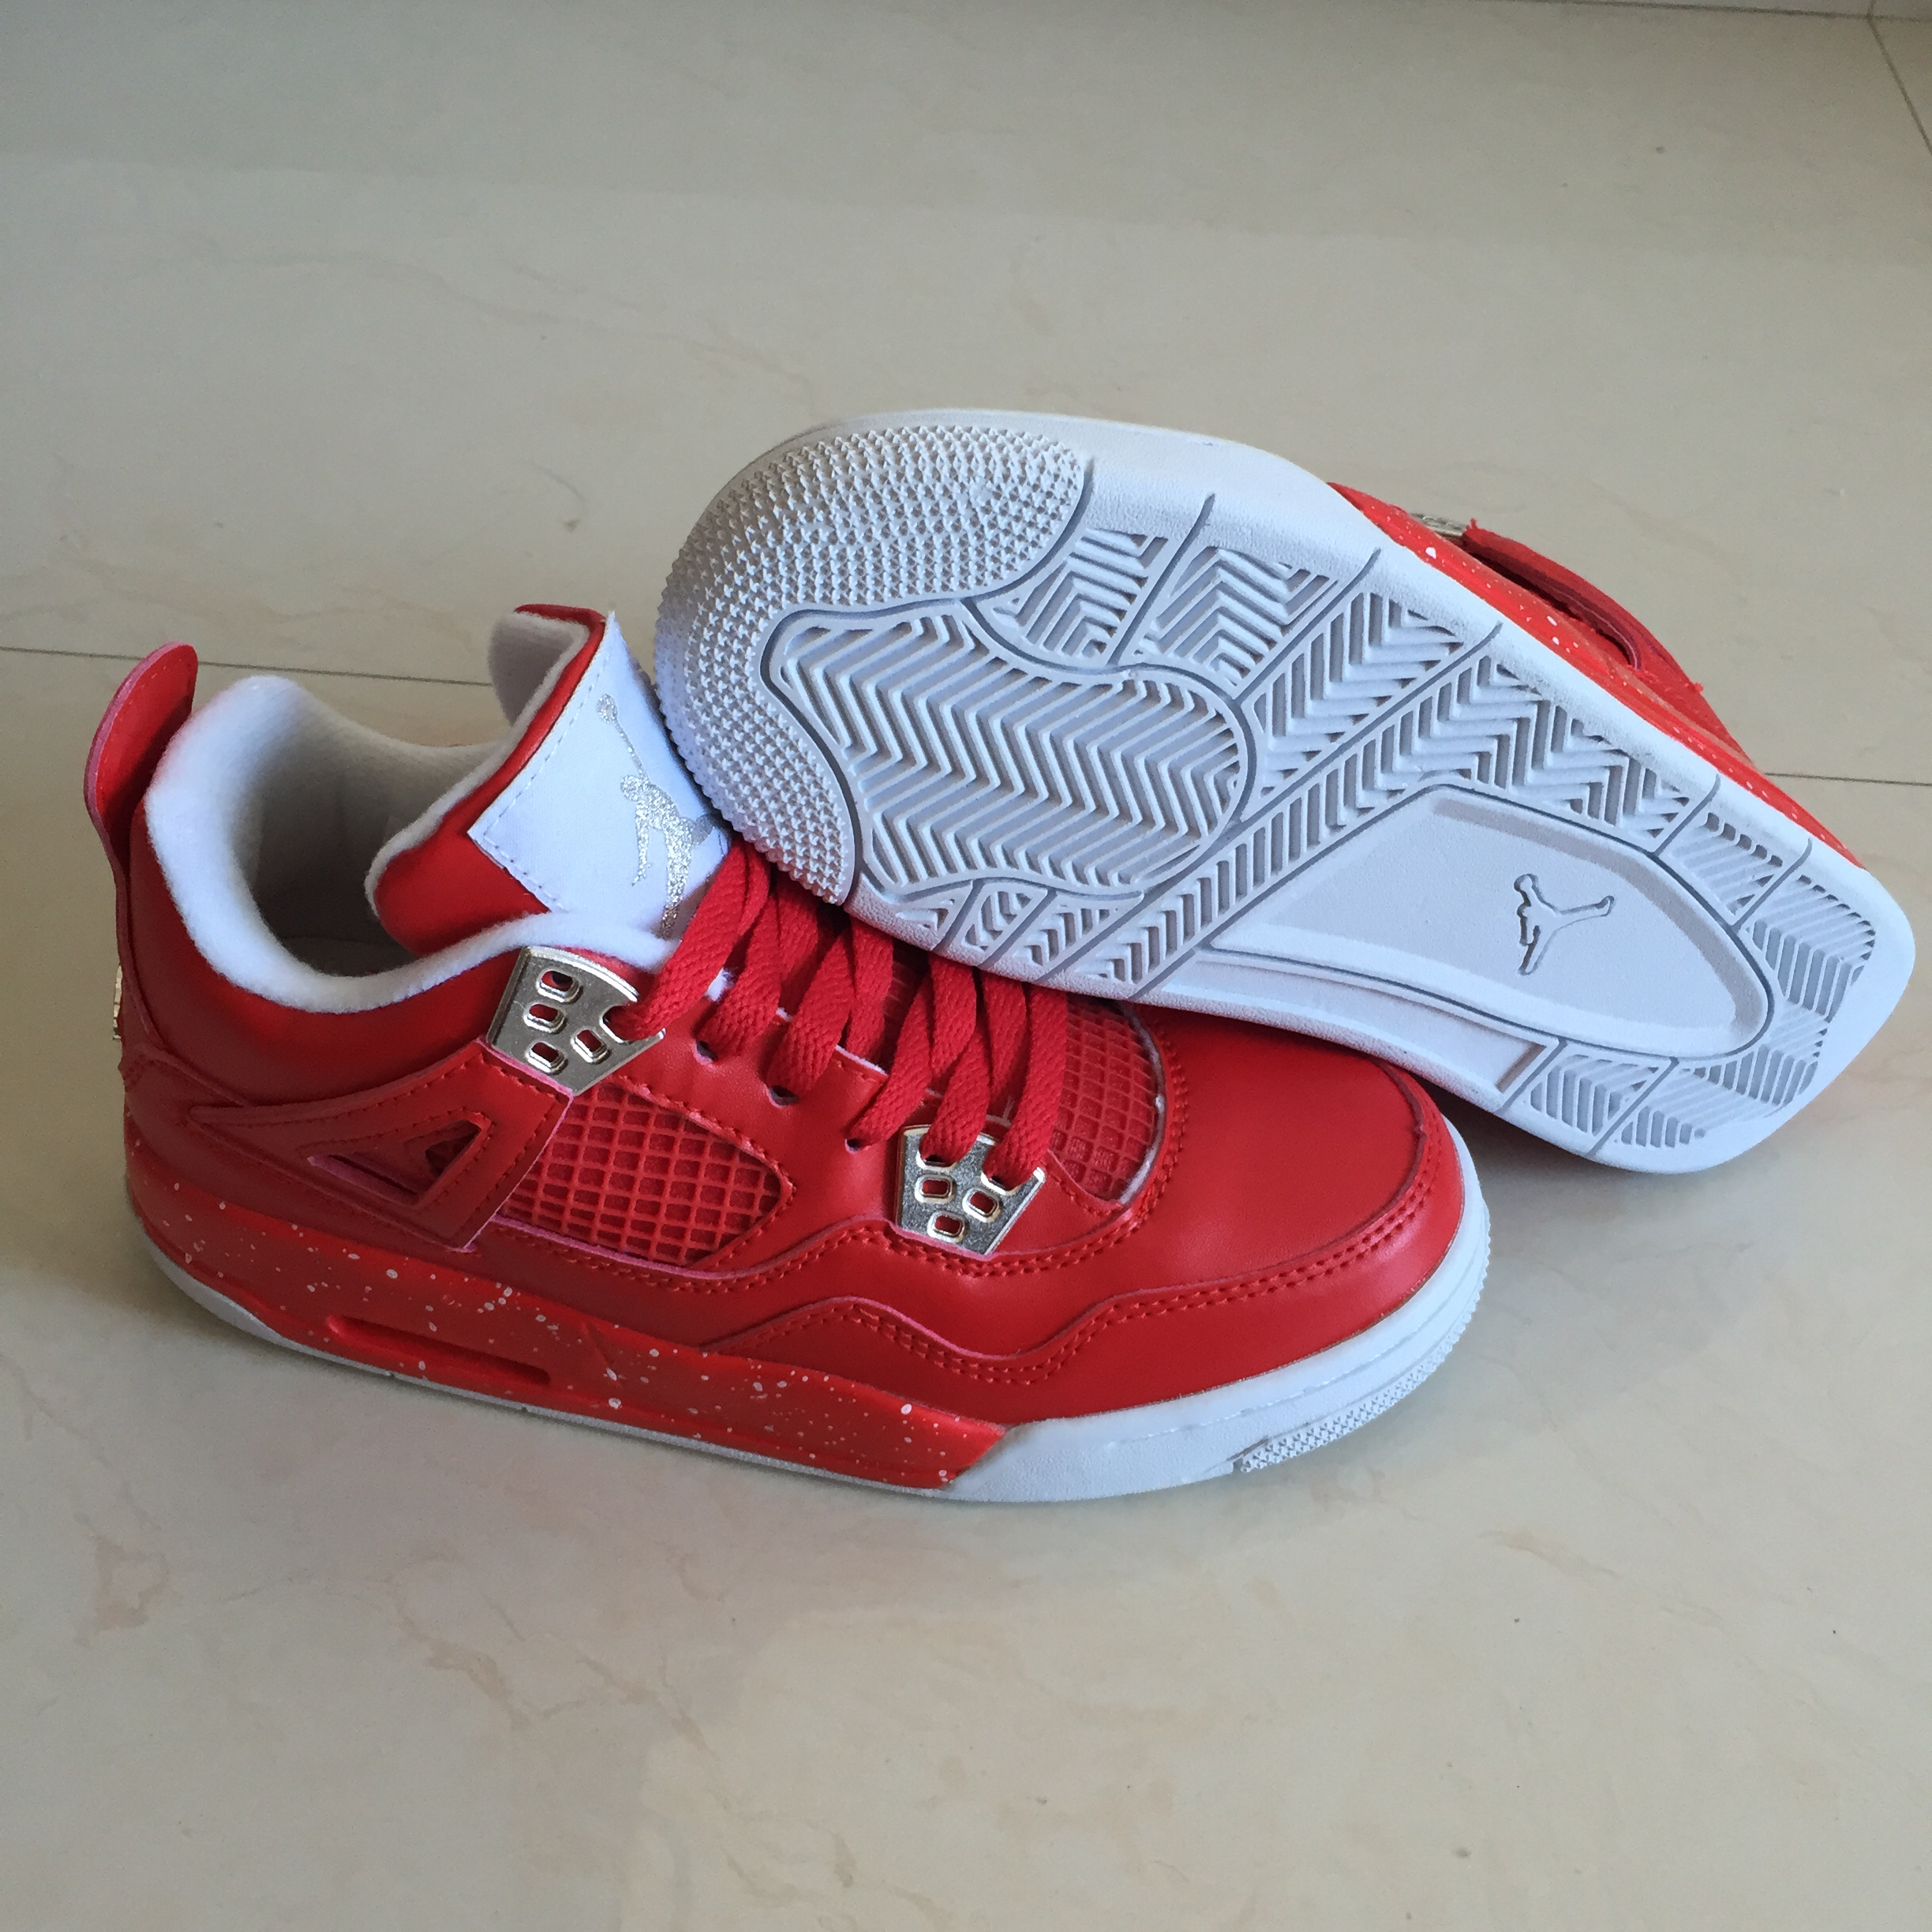 new concept 6e09a e8d5f Air Jordans 4 Retro Red 2018 Girls Womens Air Jordans Retro 4s Basketball  Shoes XY29 - Getfashionsstore.